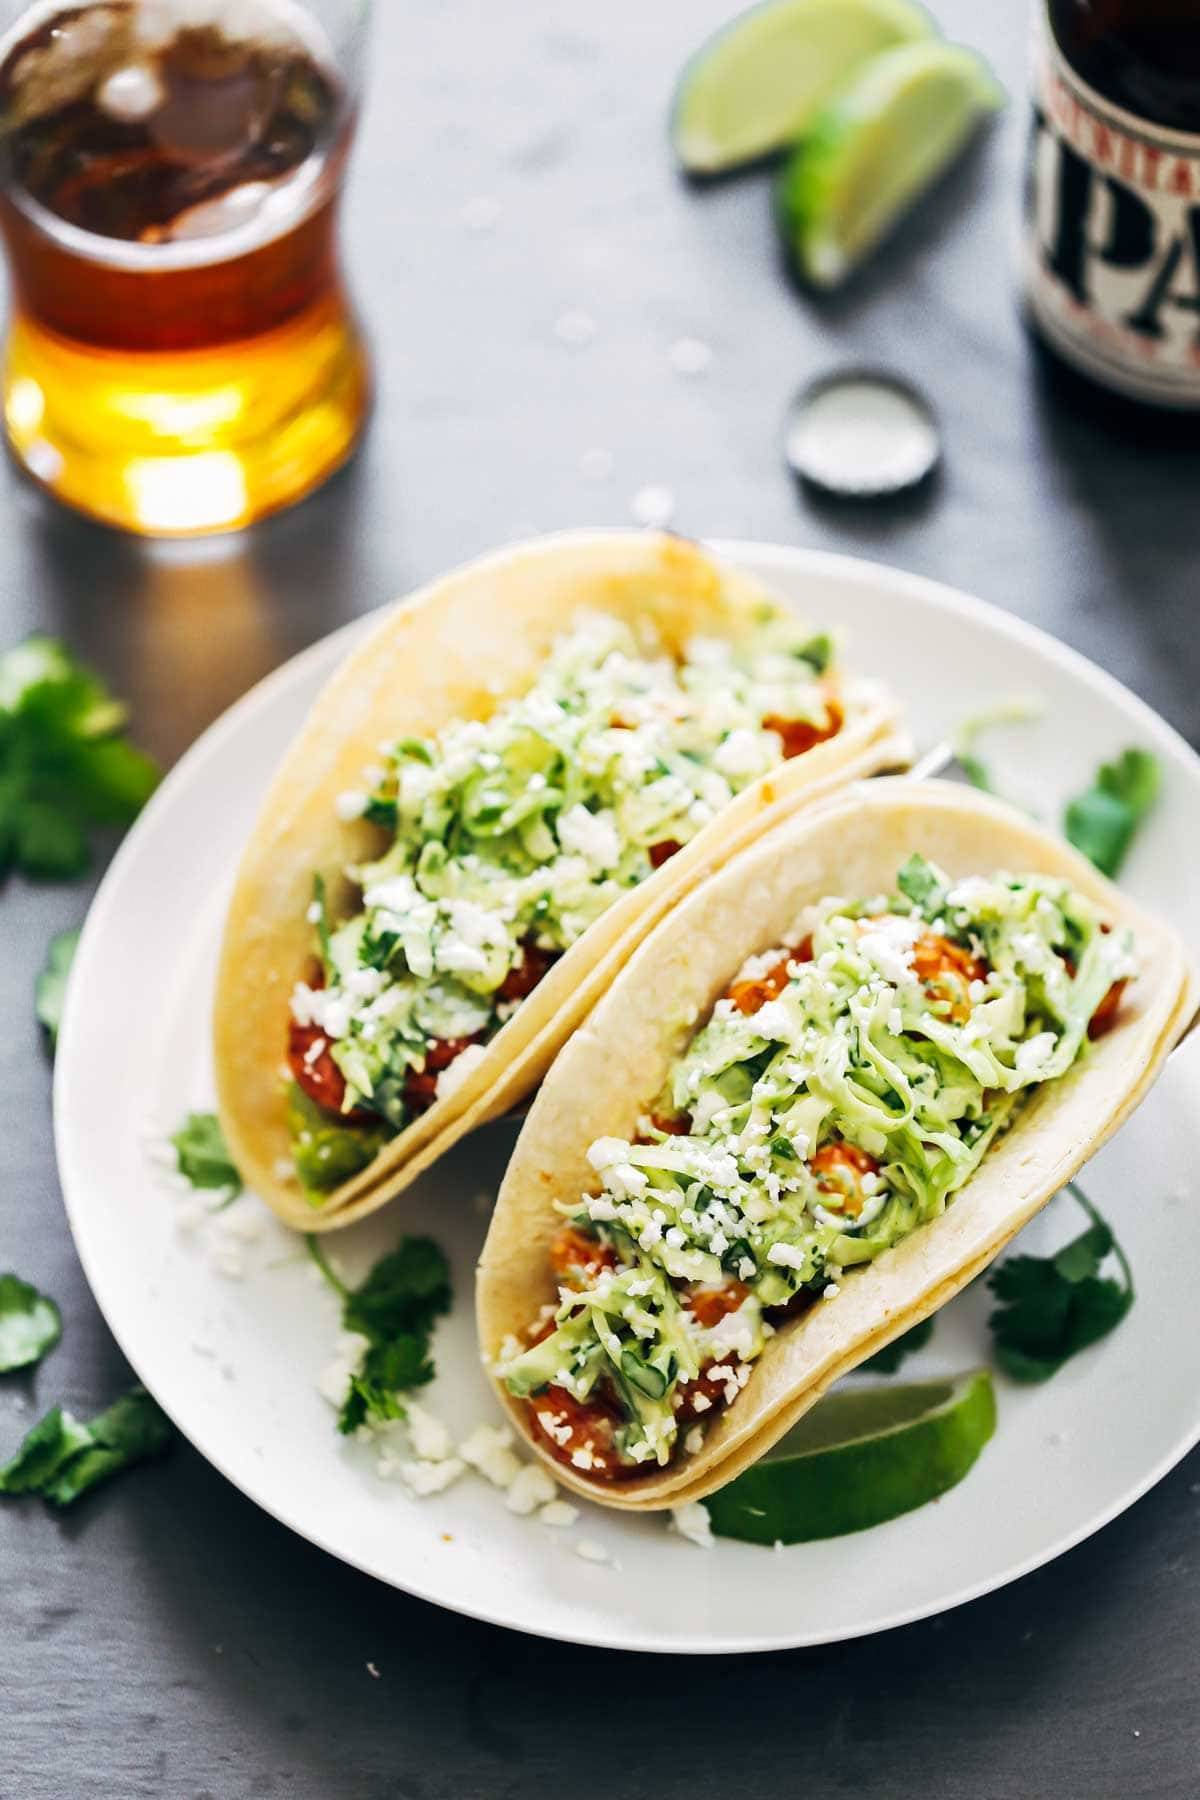 Spicy Shrimp Tacos with Garlic Cilantro Lime Slaw - ready in about 30 minutes and loaded with flavor and texture. SO YUM! | pinchofyum.com